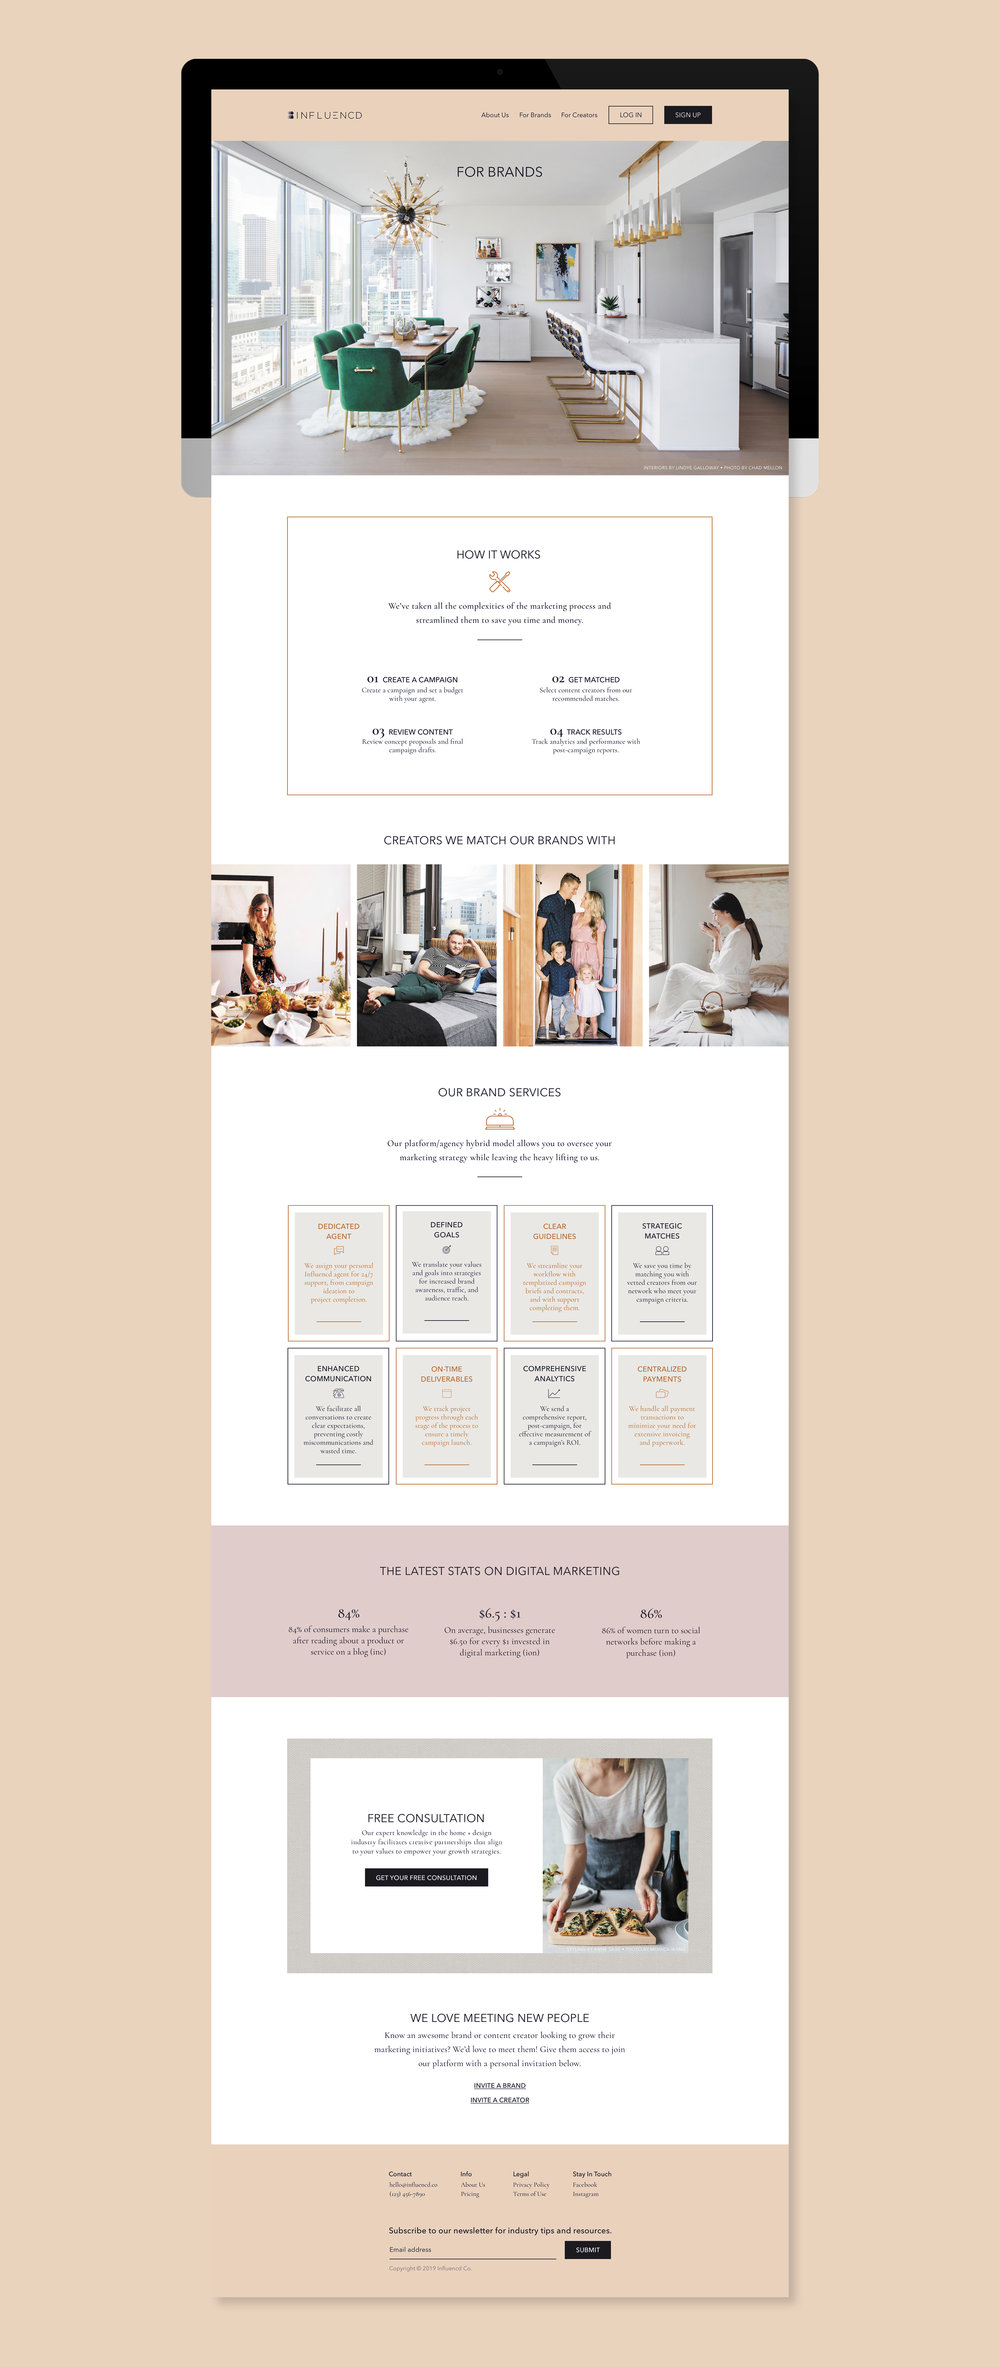 WEBSITE: Design For The Brand-As-User Experience